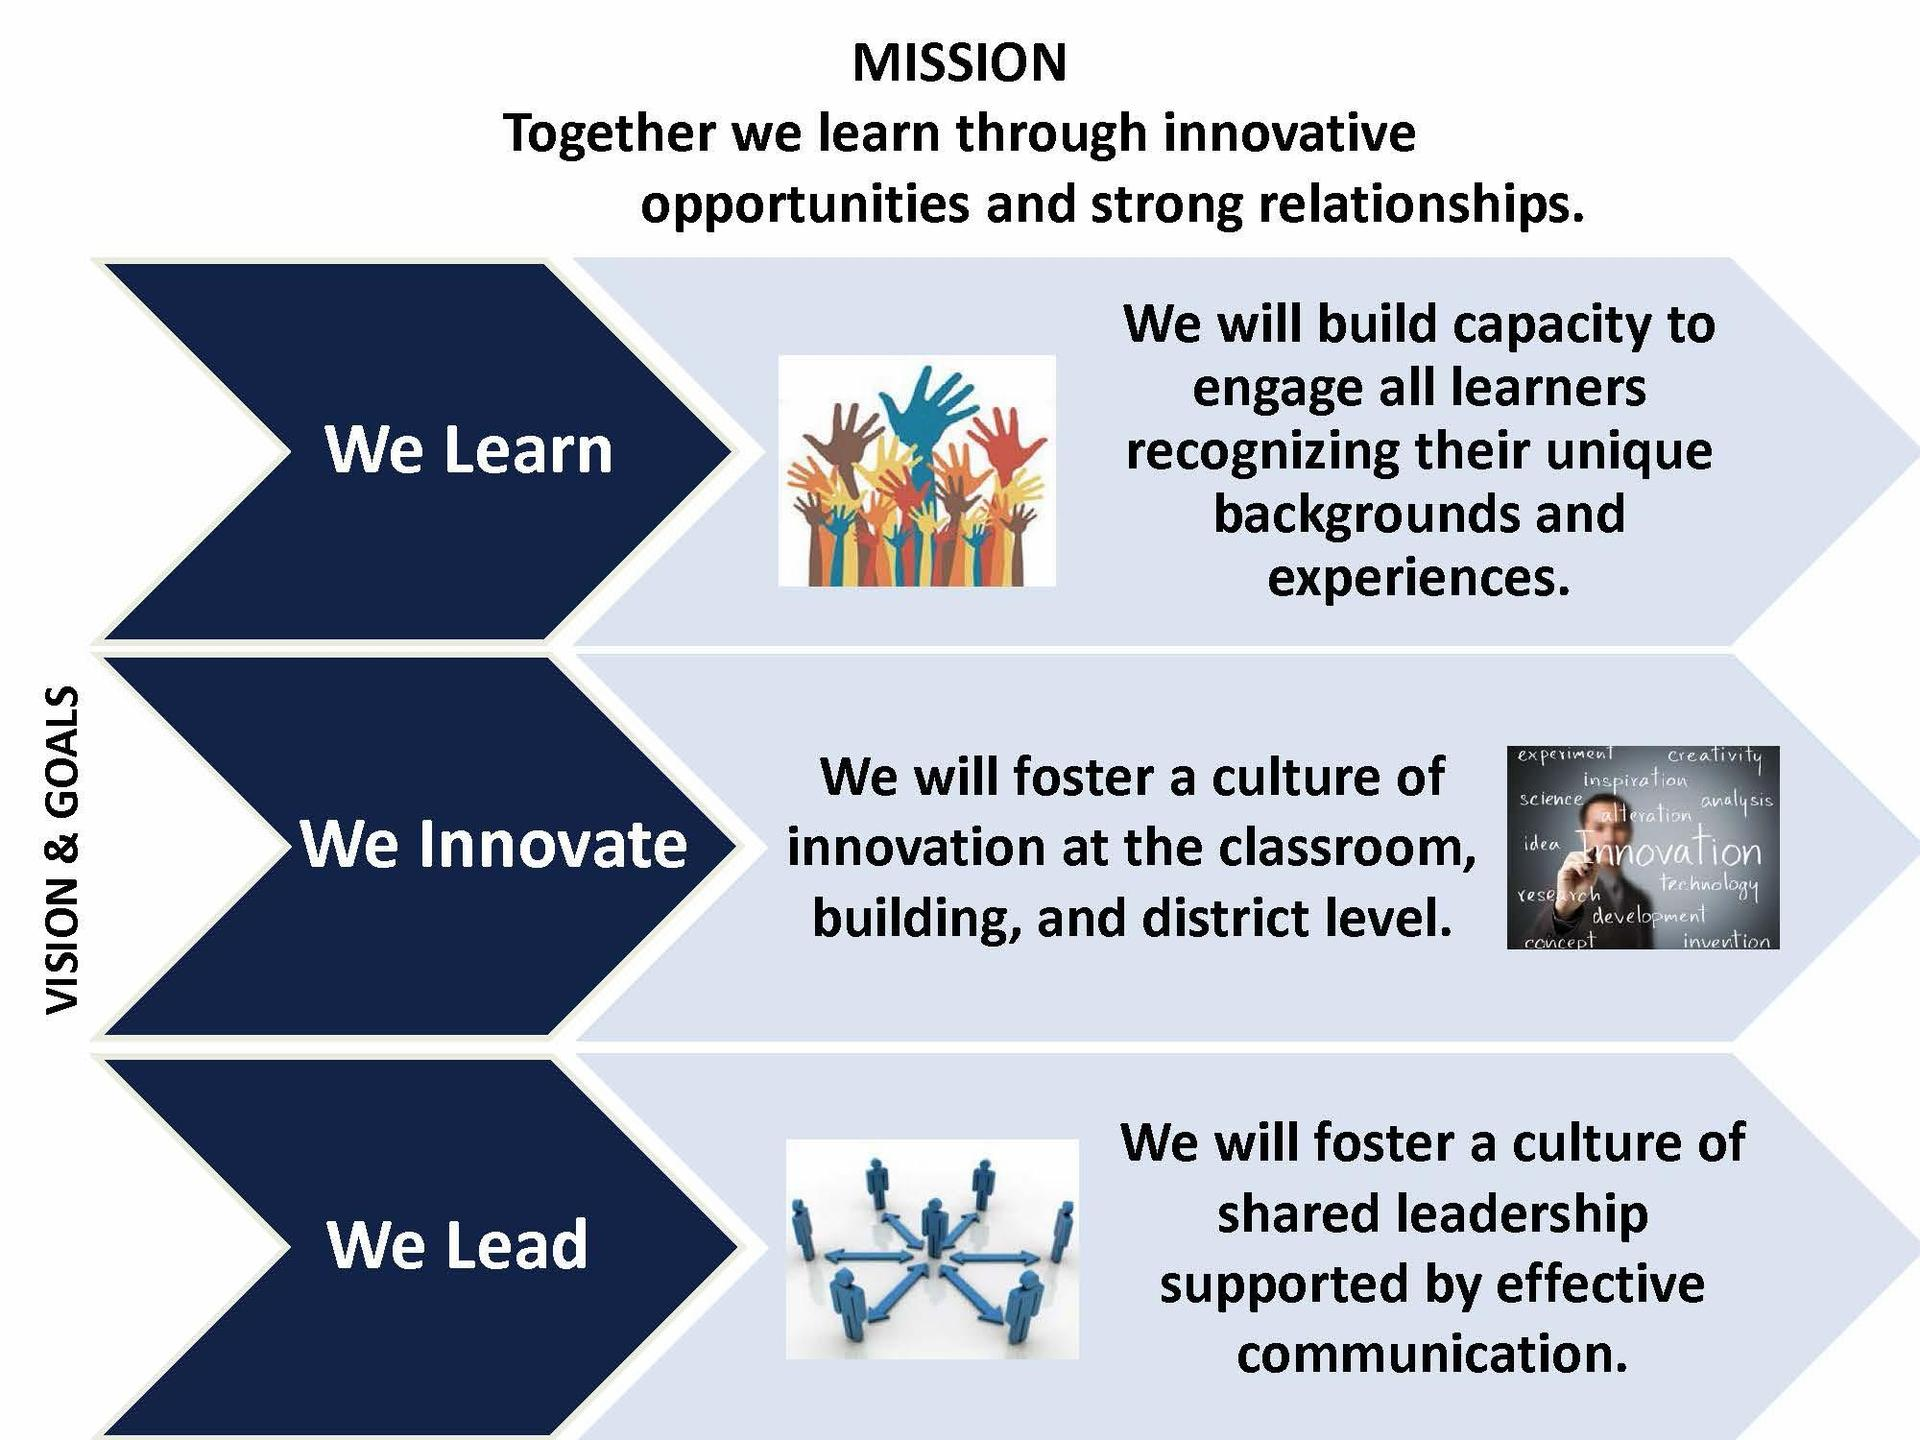 MISSION:  TOGETHER WE LEARN THROUGH INNOVATIVE OPPORTUNITIES AND STRONG RELATIONSHIPS.  VISION AND GOALS:   WE LEARN: We will build capacity to engage all learners recognizing their unique background and experiences. WE INNOVATE: We will foster a culture of innovation at the classroom, building and district level. WE LEAD: We will foster a culture of shared leadership supported by effective communication.